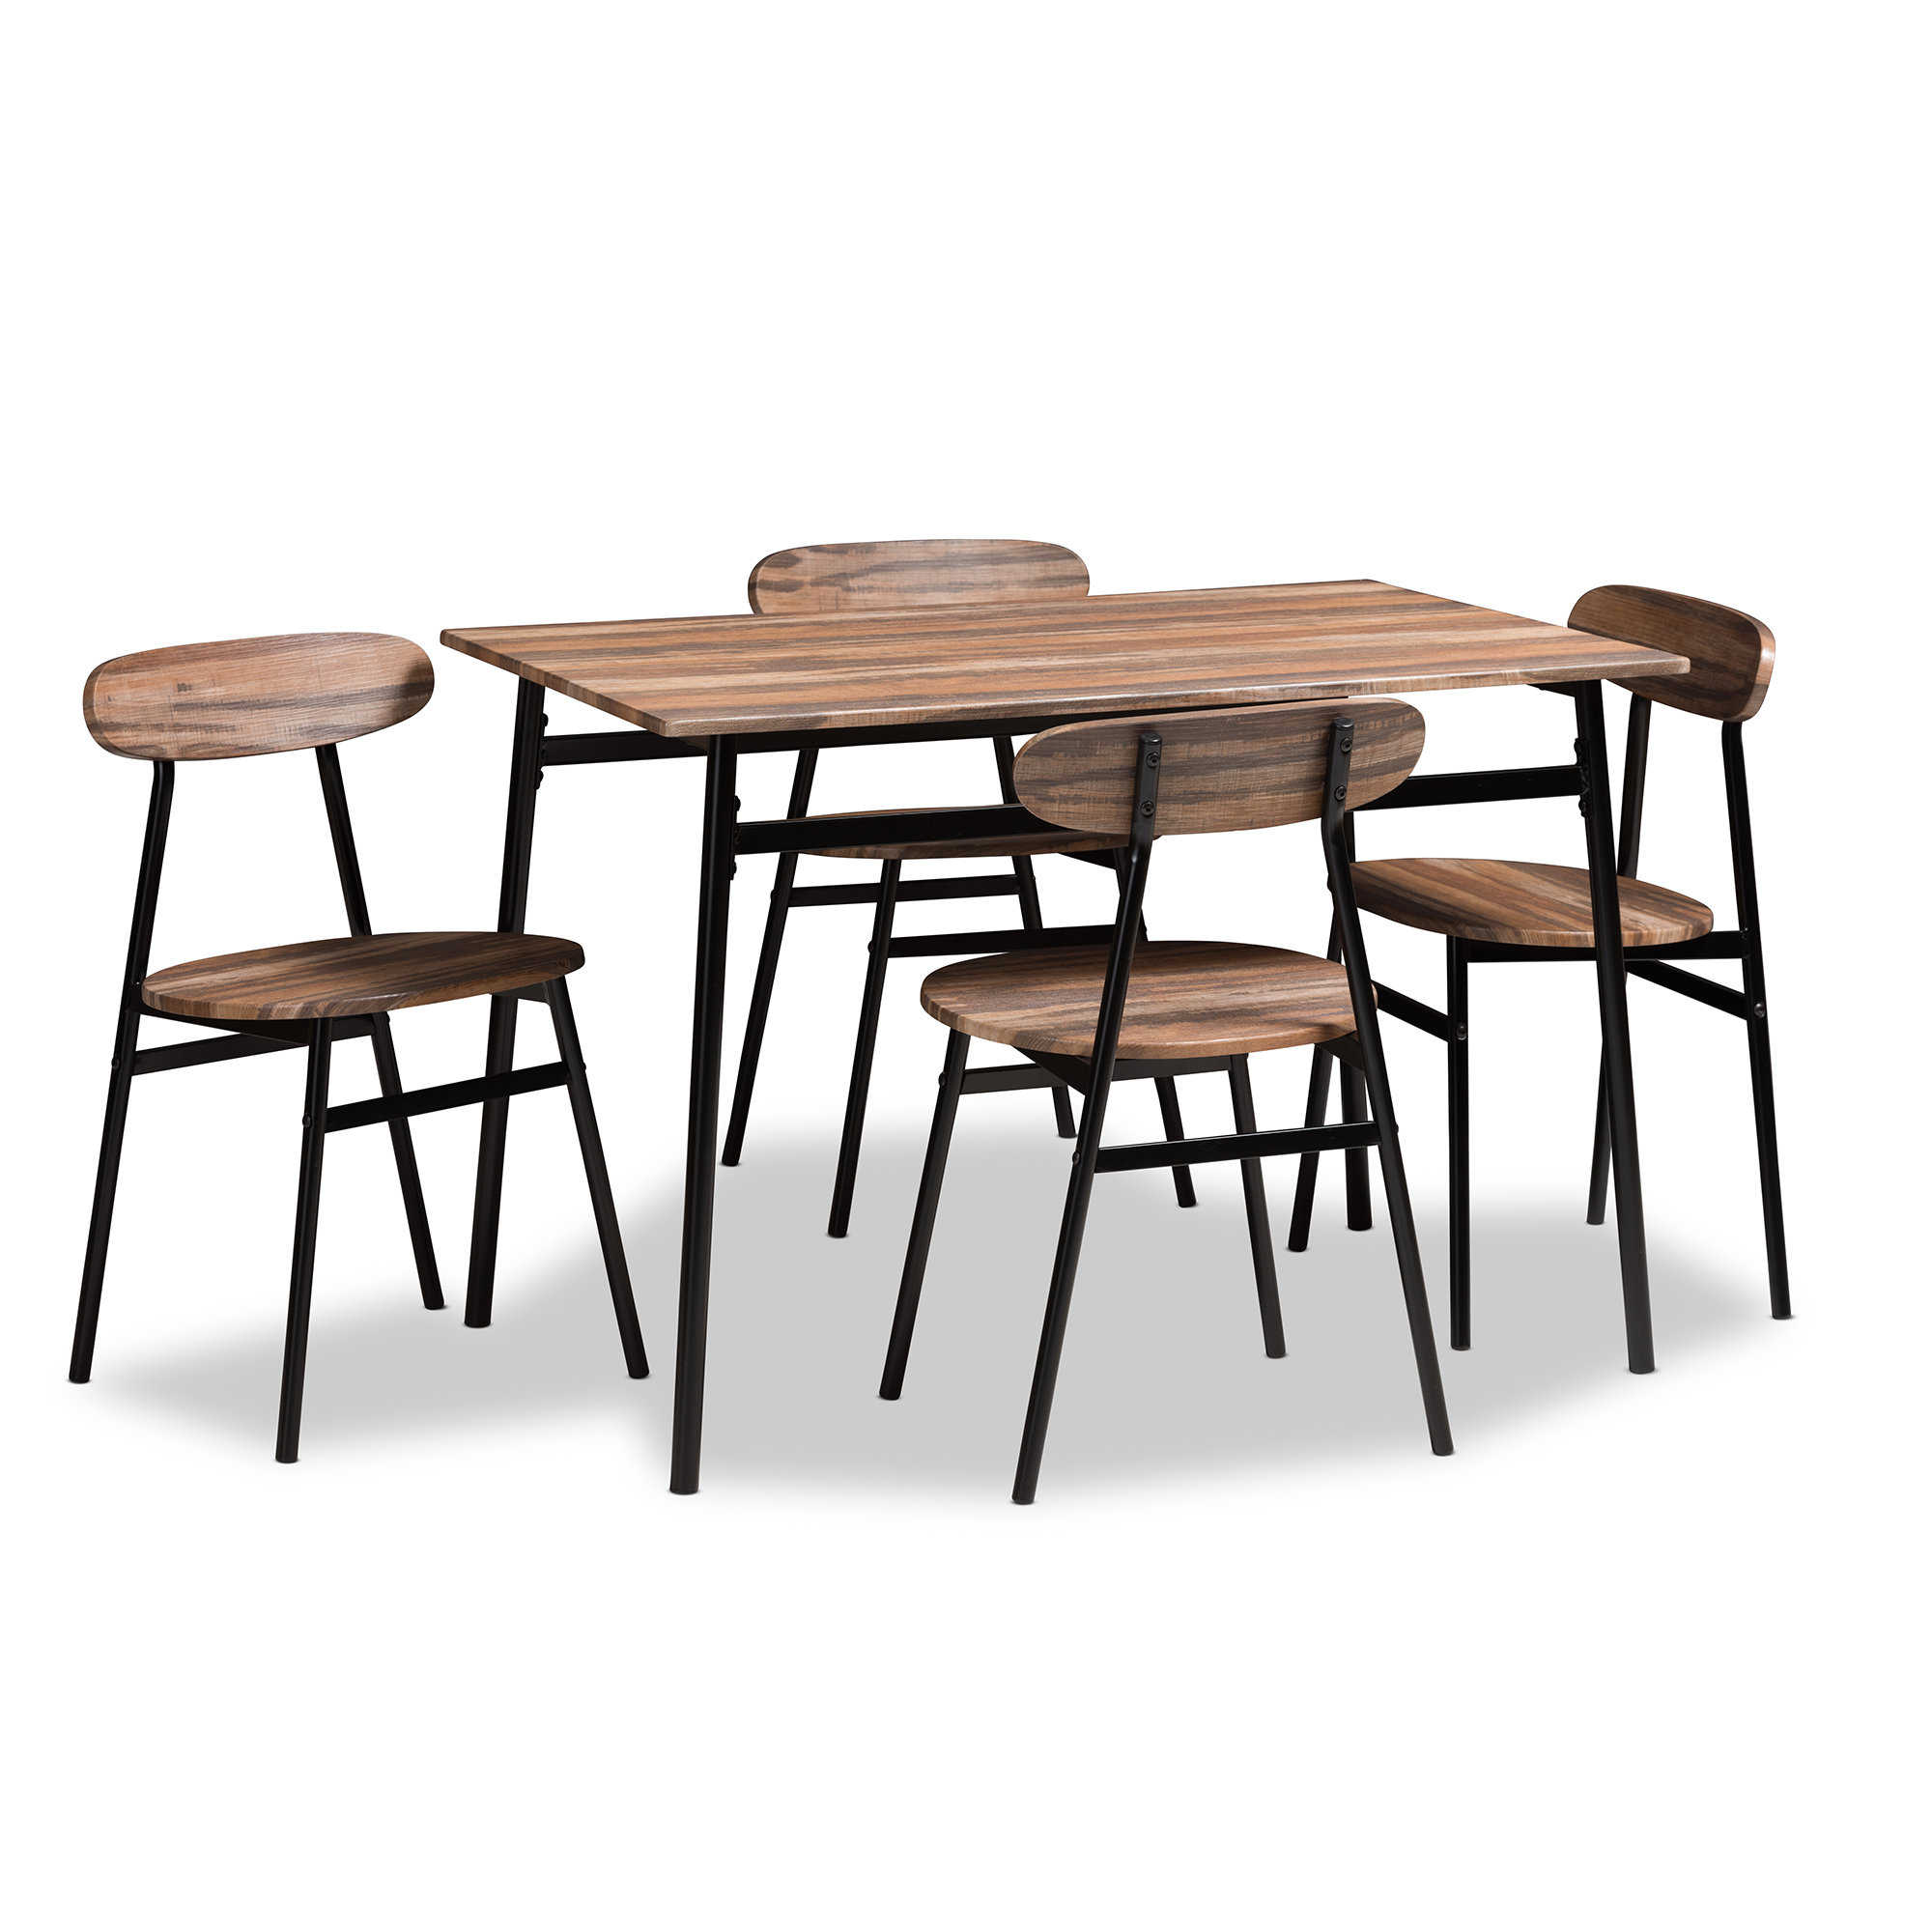 Calla 5 Piece Dining Sets Intended For Most Recently Released Telauges 5 Piece Dining Set (Gallery 11 of 20)